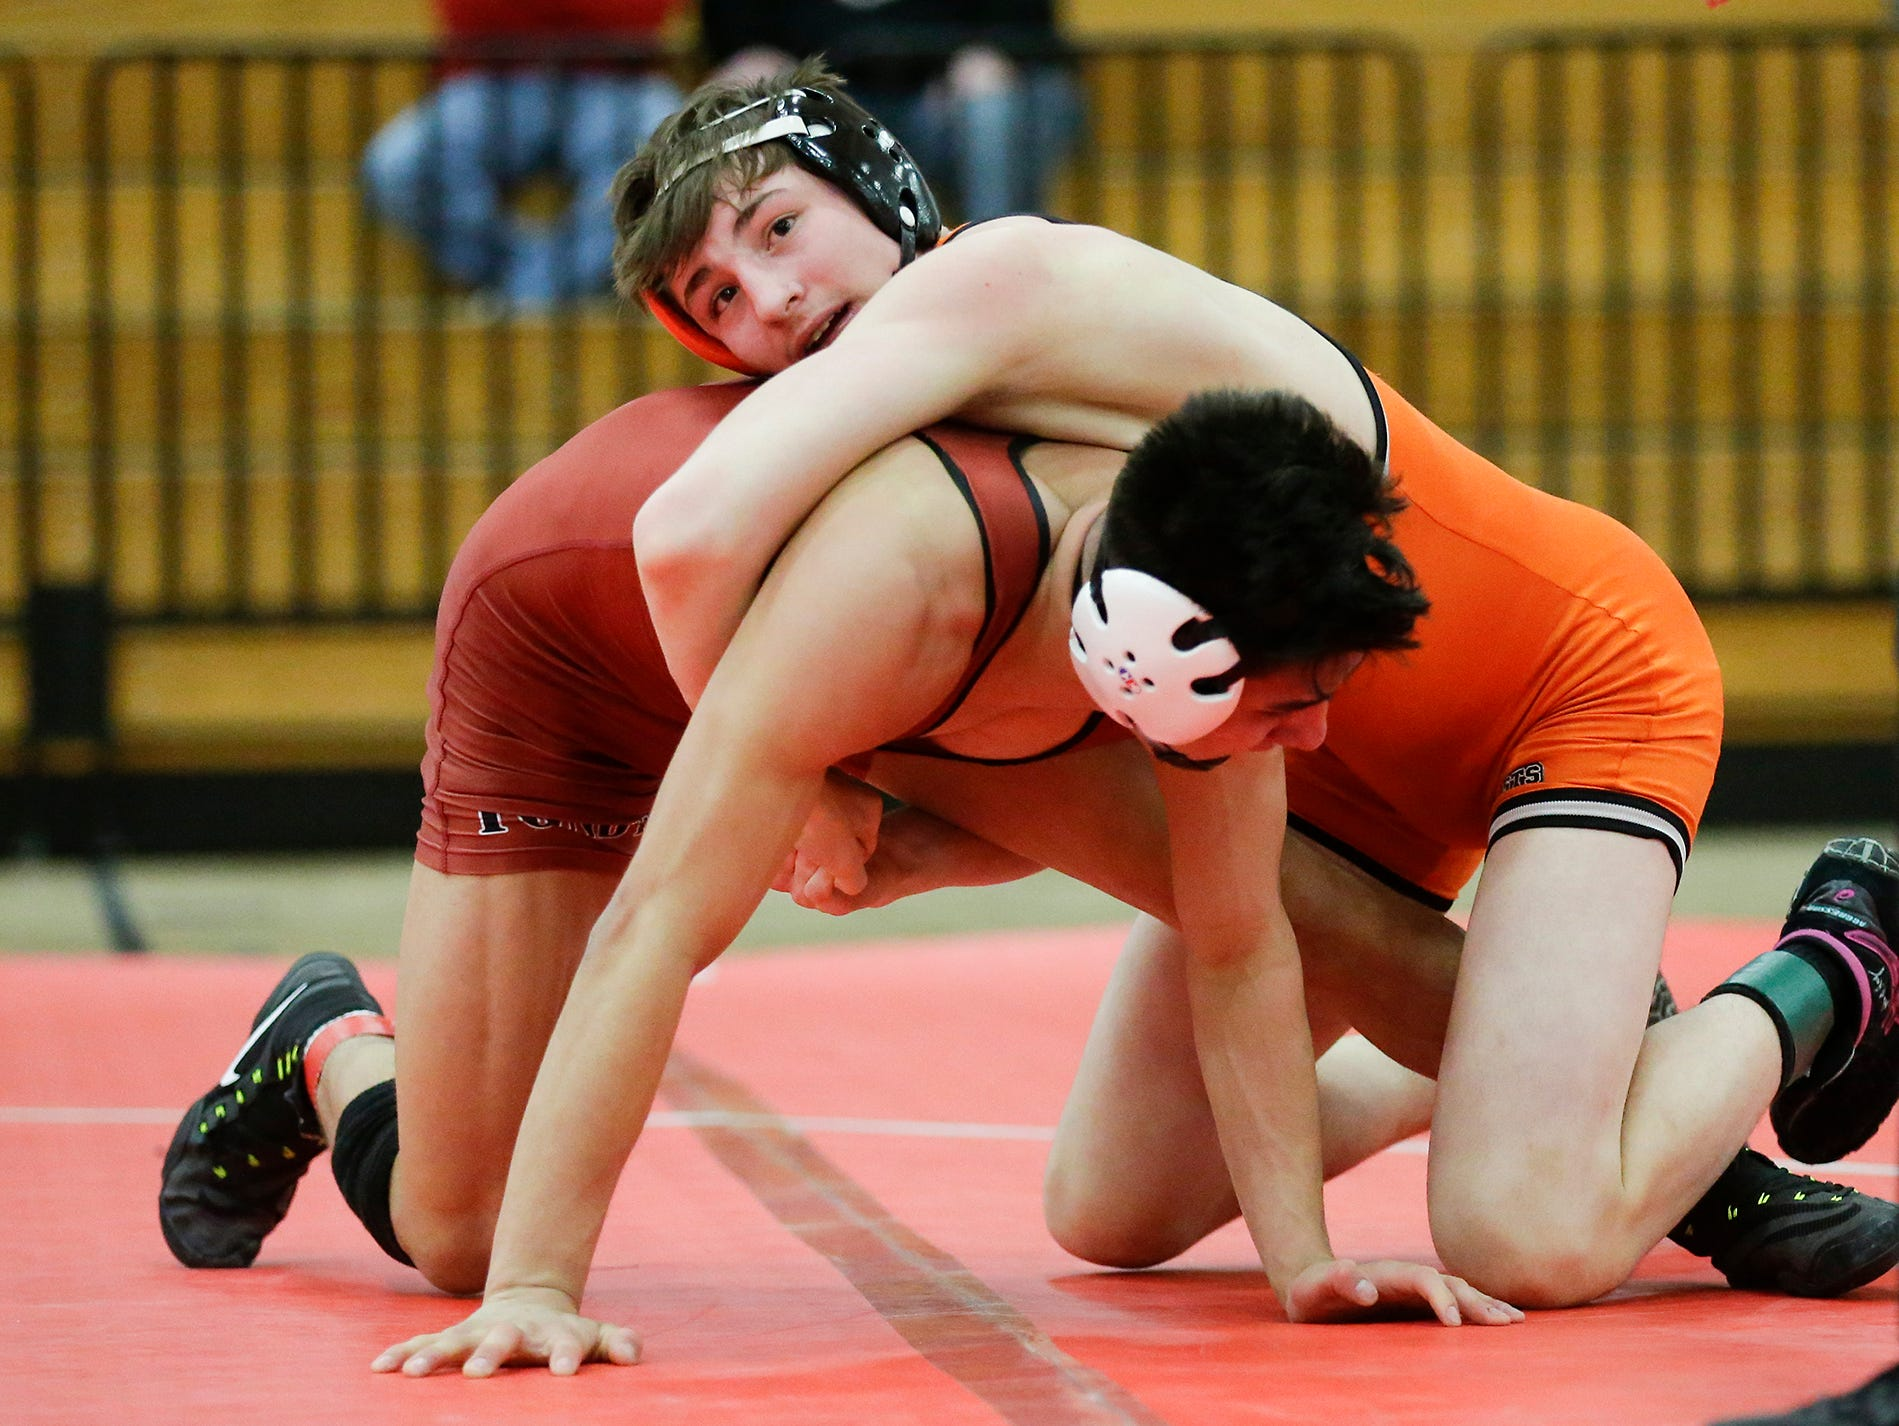 Kaukauna High School's John Diener wrestles Fond du Lac High School's Issac Ortegon in a 138-pound match during the Fox Valley Association wrestling championship meet held in Fond du Lac, Saturday, Feb. 2, 2019. Ortegon won the match by a score of 8-5.